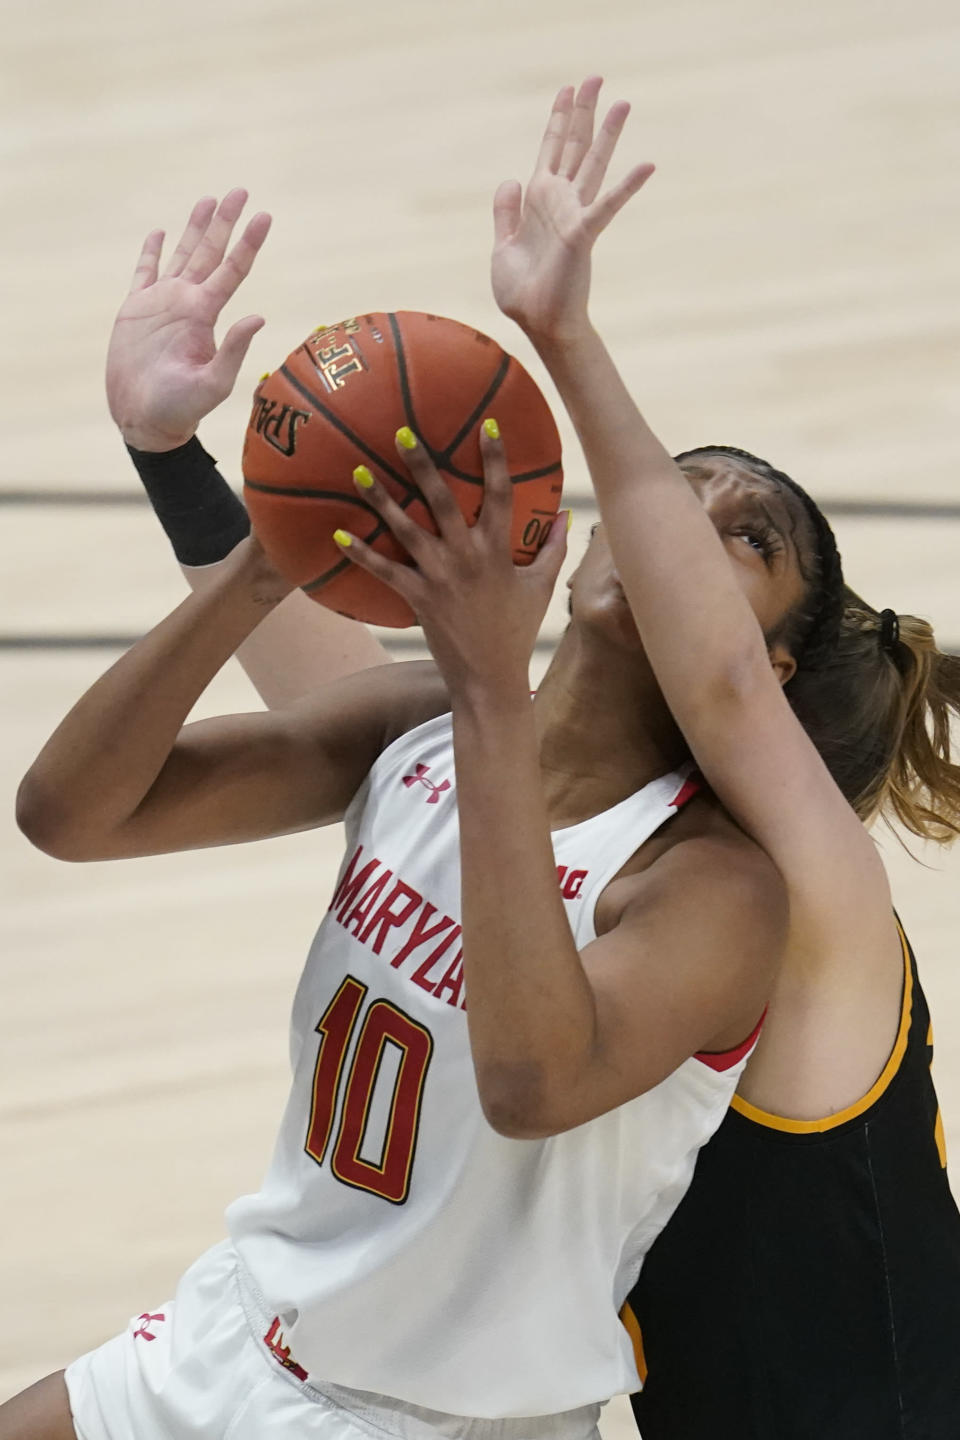 Maryland's Angel Reese (10) shoots against Iowa's Monika Czinano (25) during the first half of an NCAA college basketball game in the championship of the Big Ten Conference tournament, Saturday, March 13, 2021, in Indianapolis. (AP Photo/Darron Cummings)